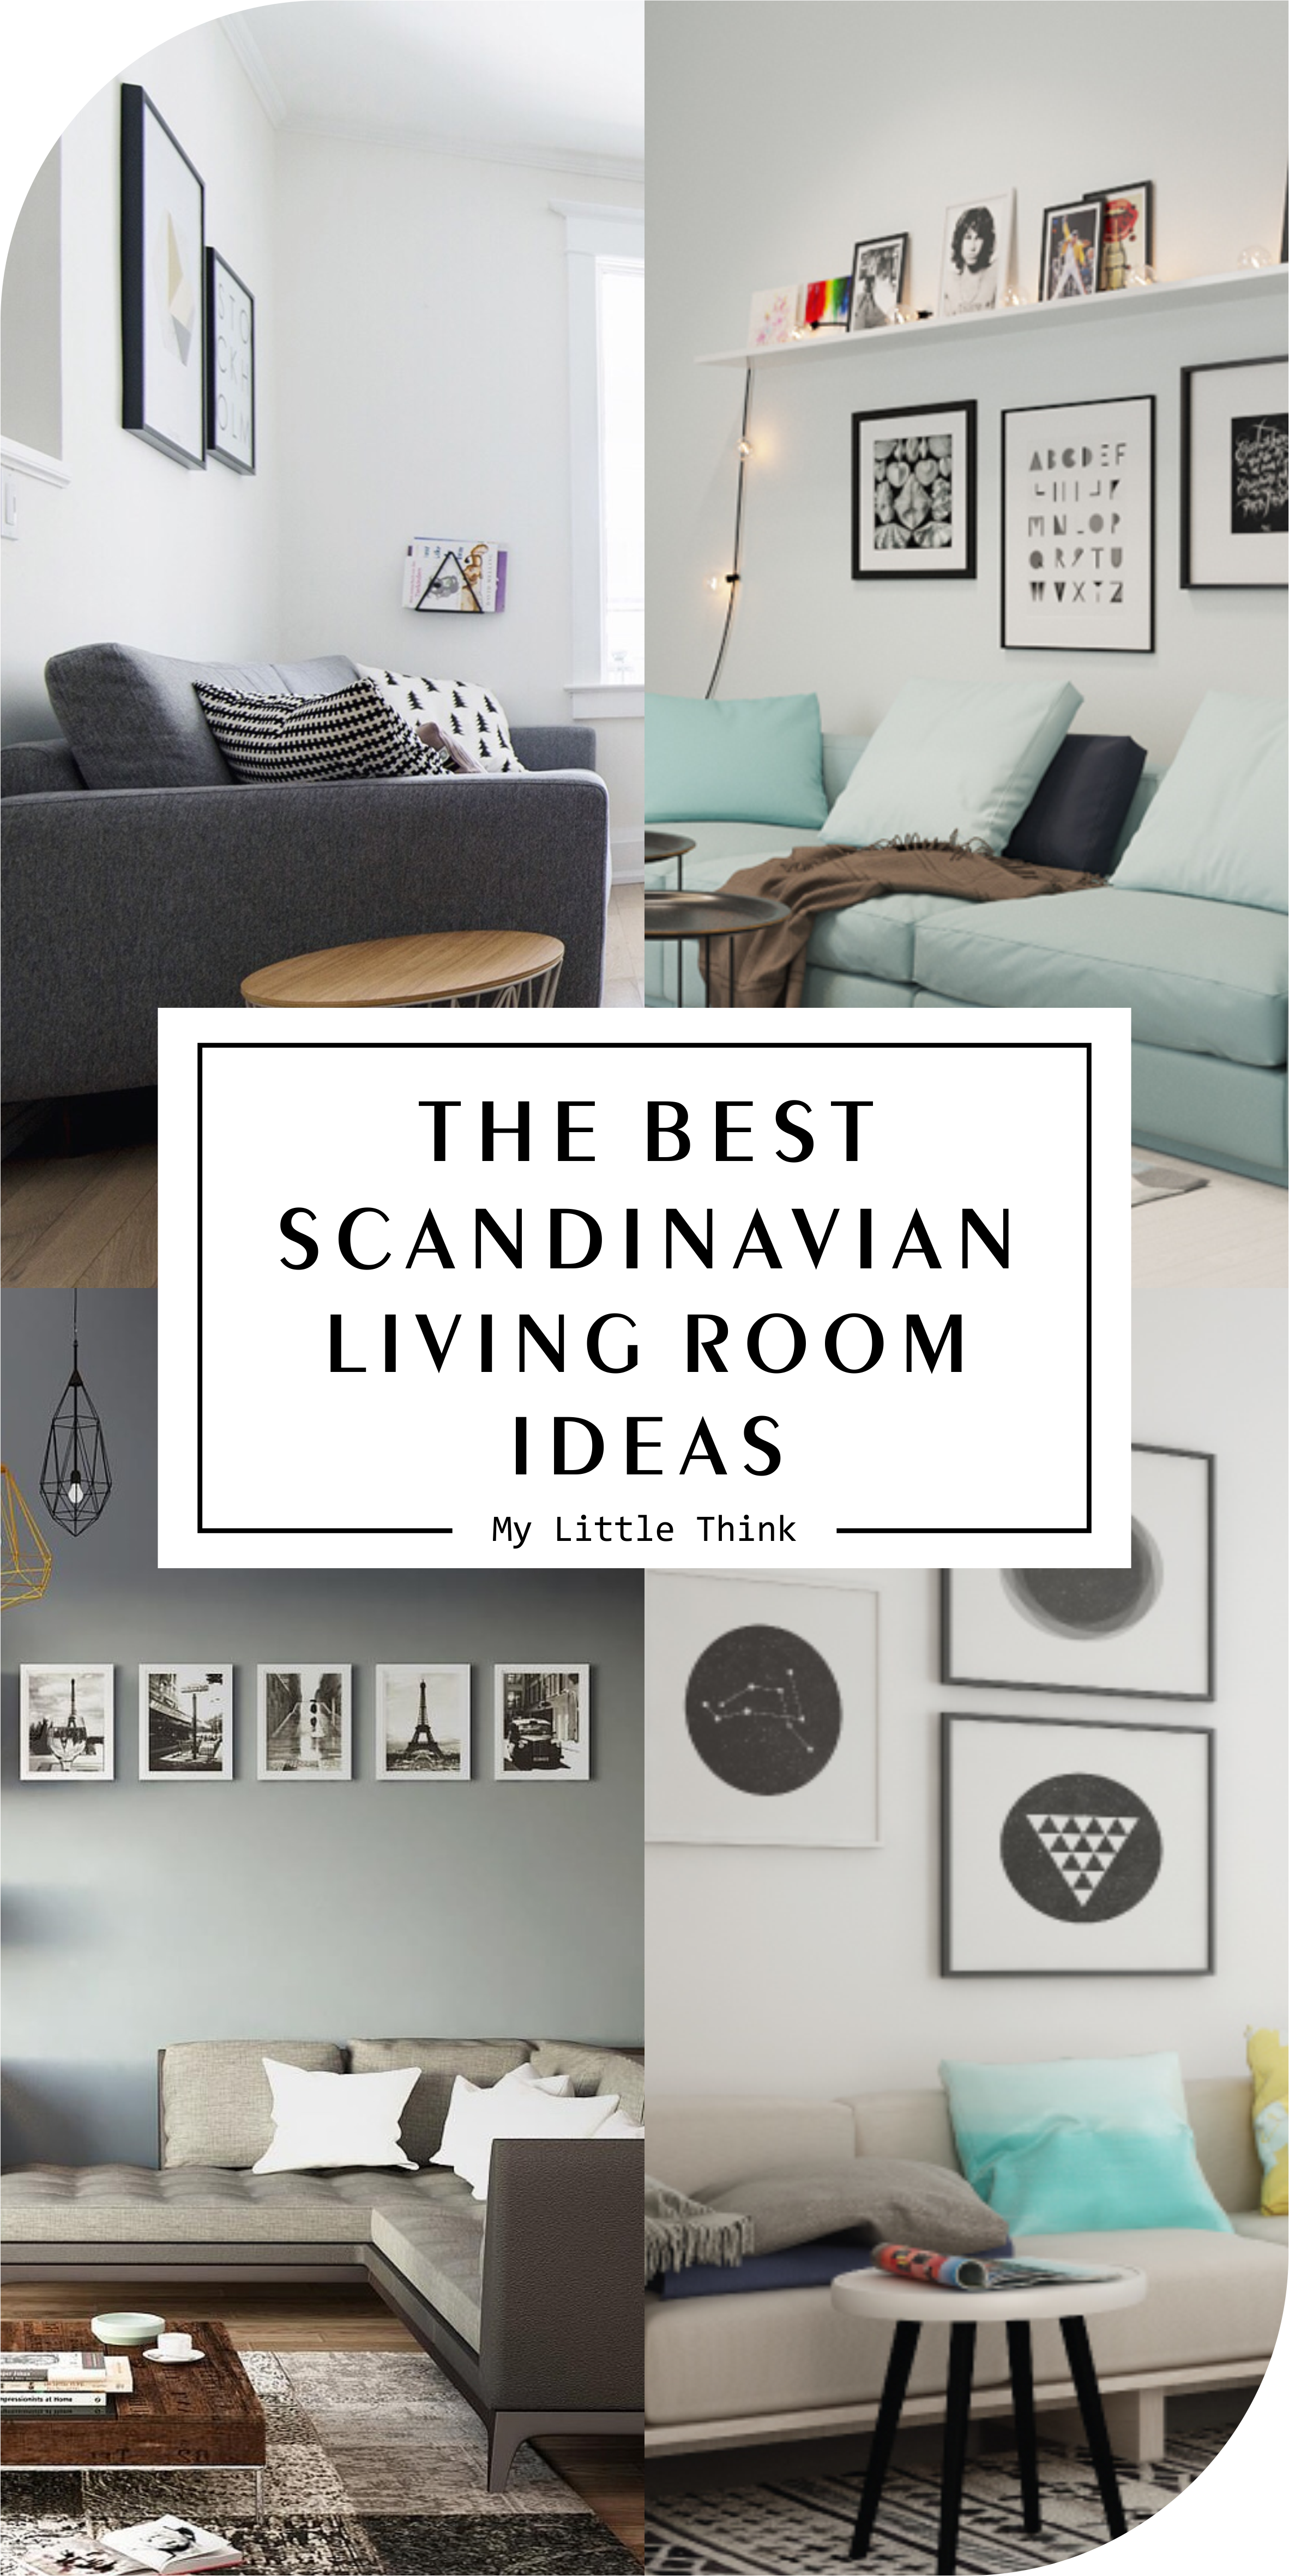 By using Scandinavian decorations our living room